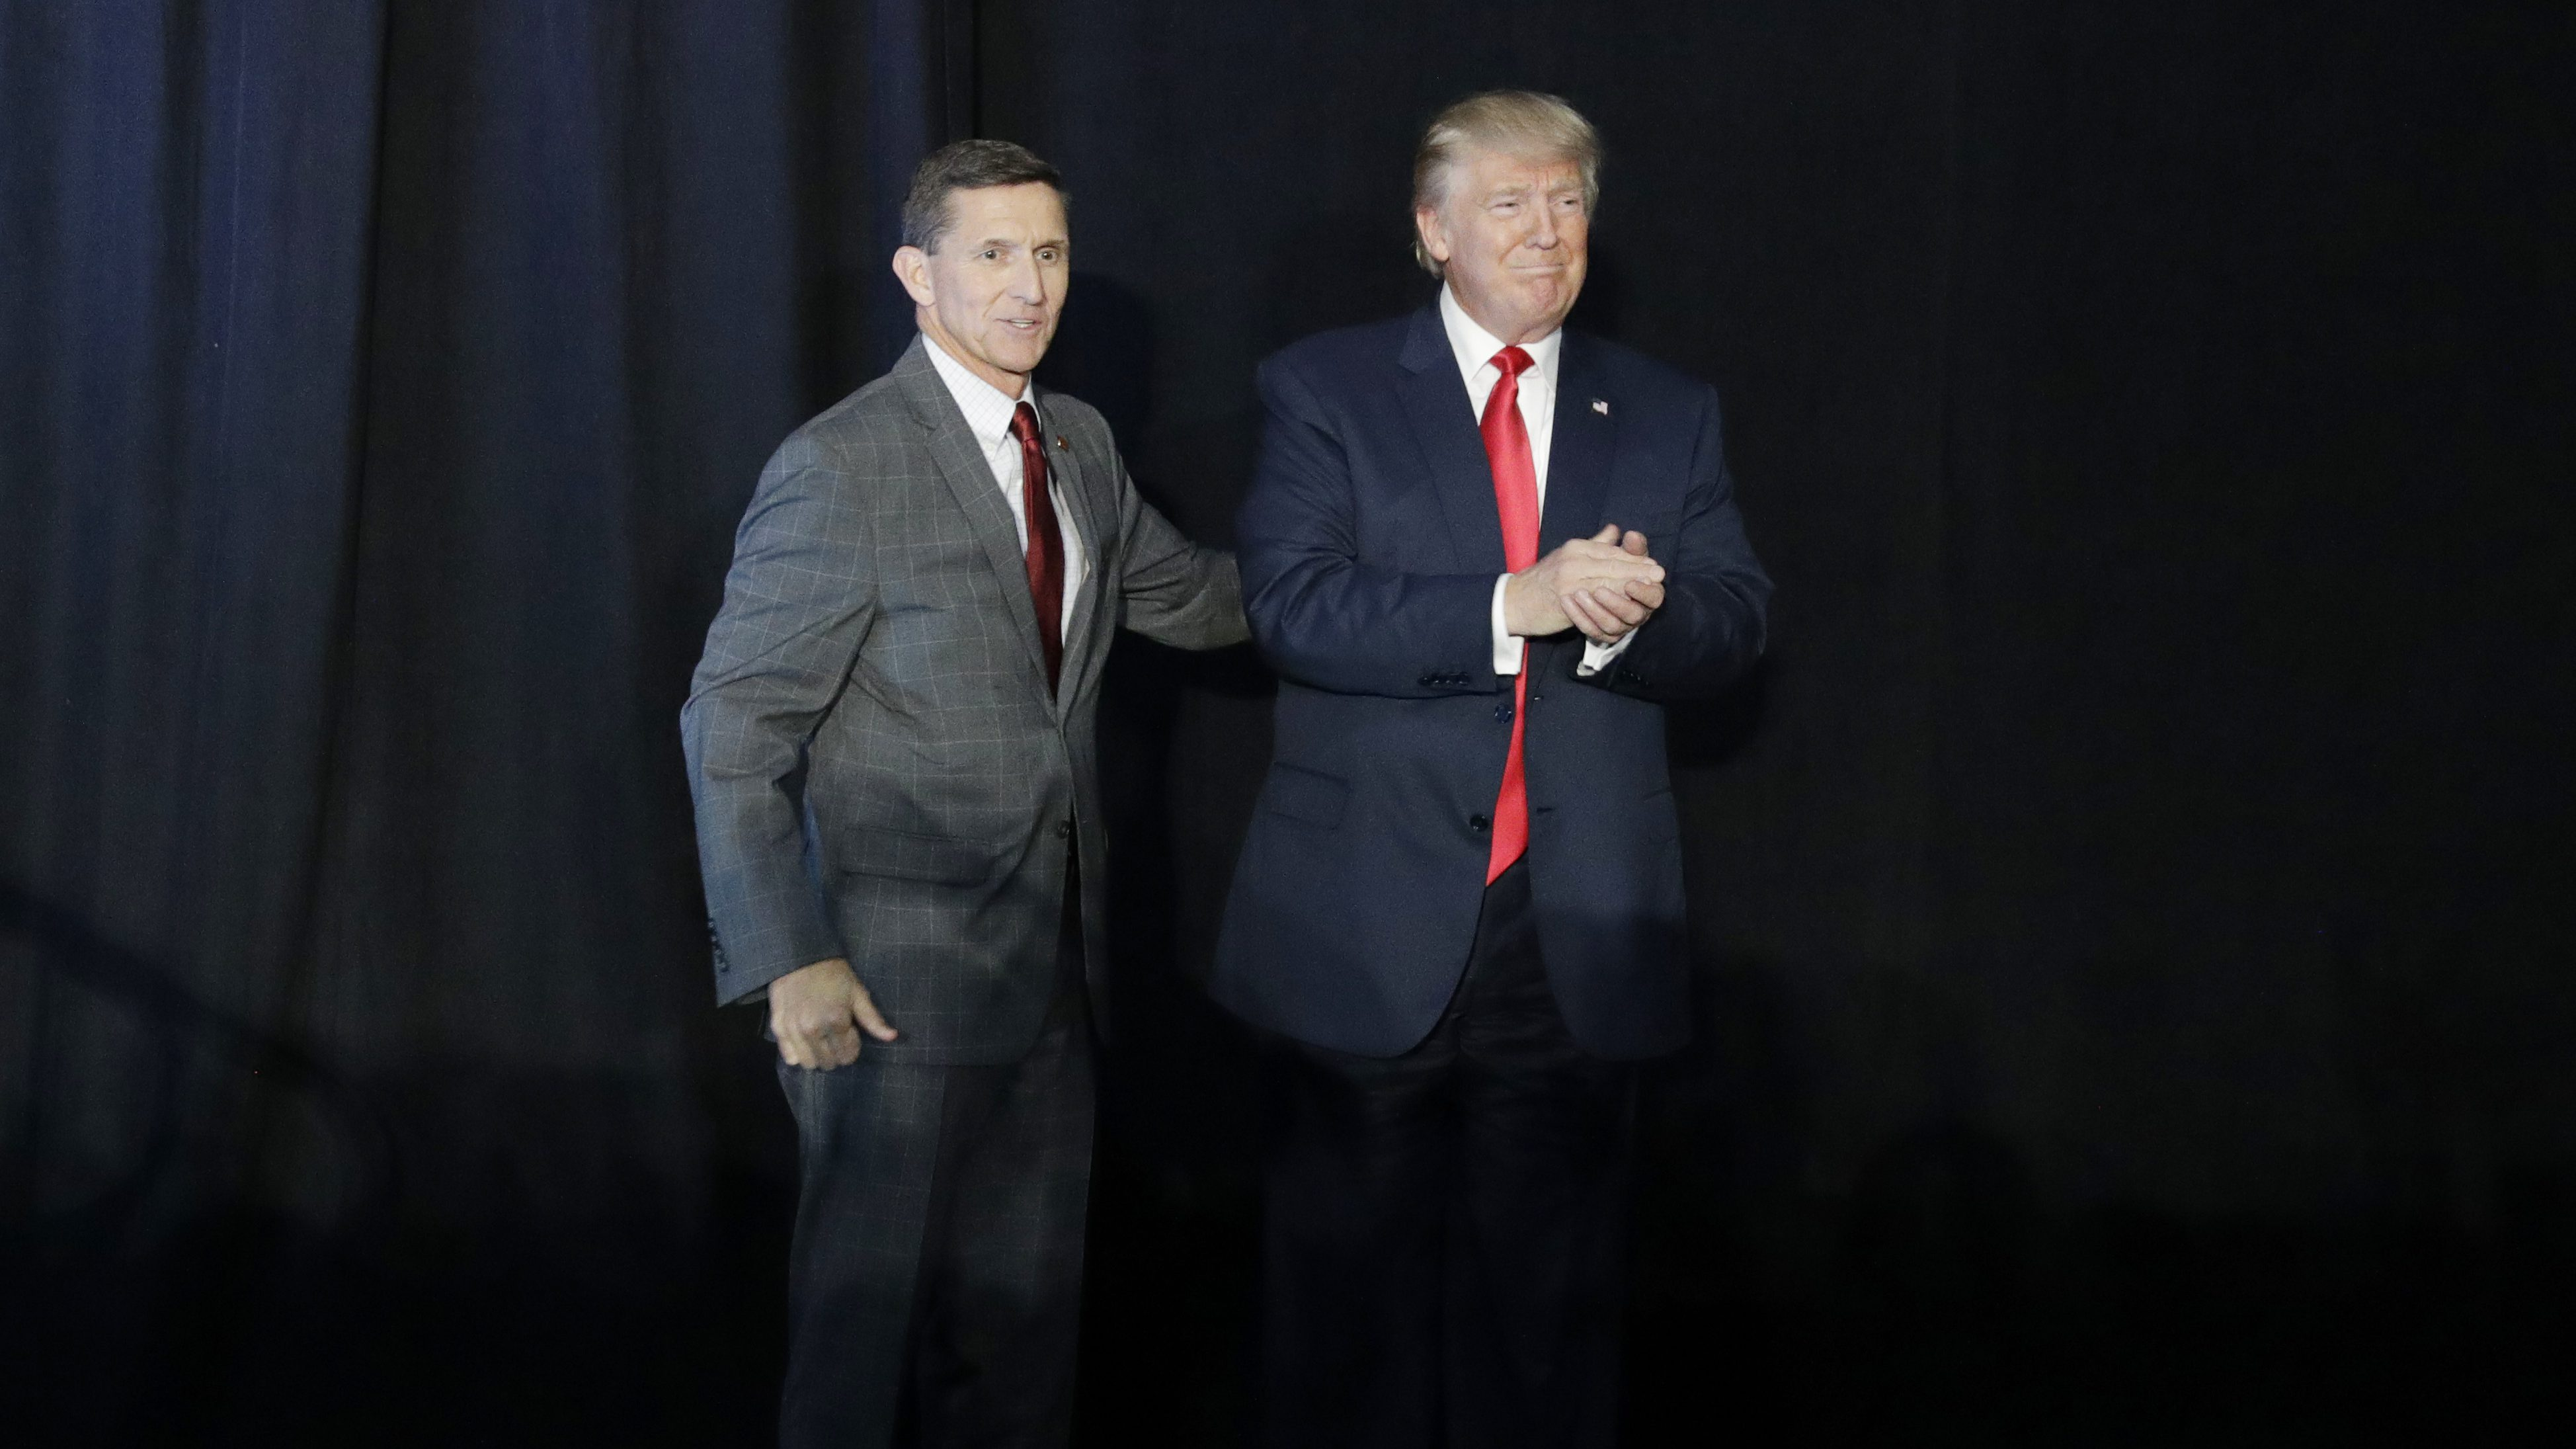 Michael Flynn is Donald Trump's pick for national security adviser